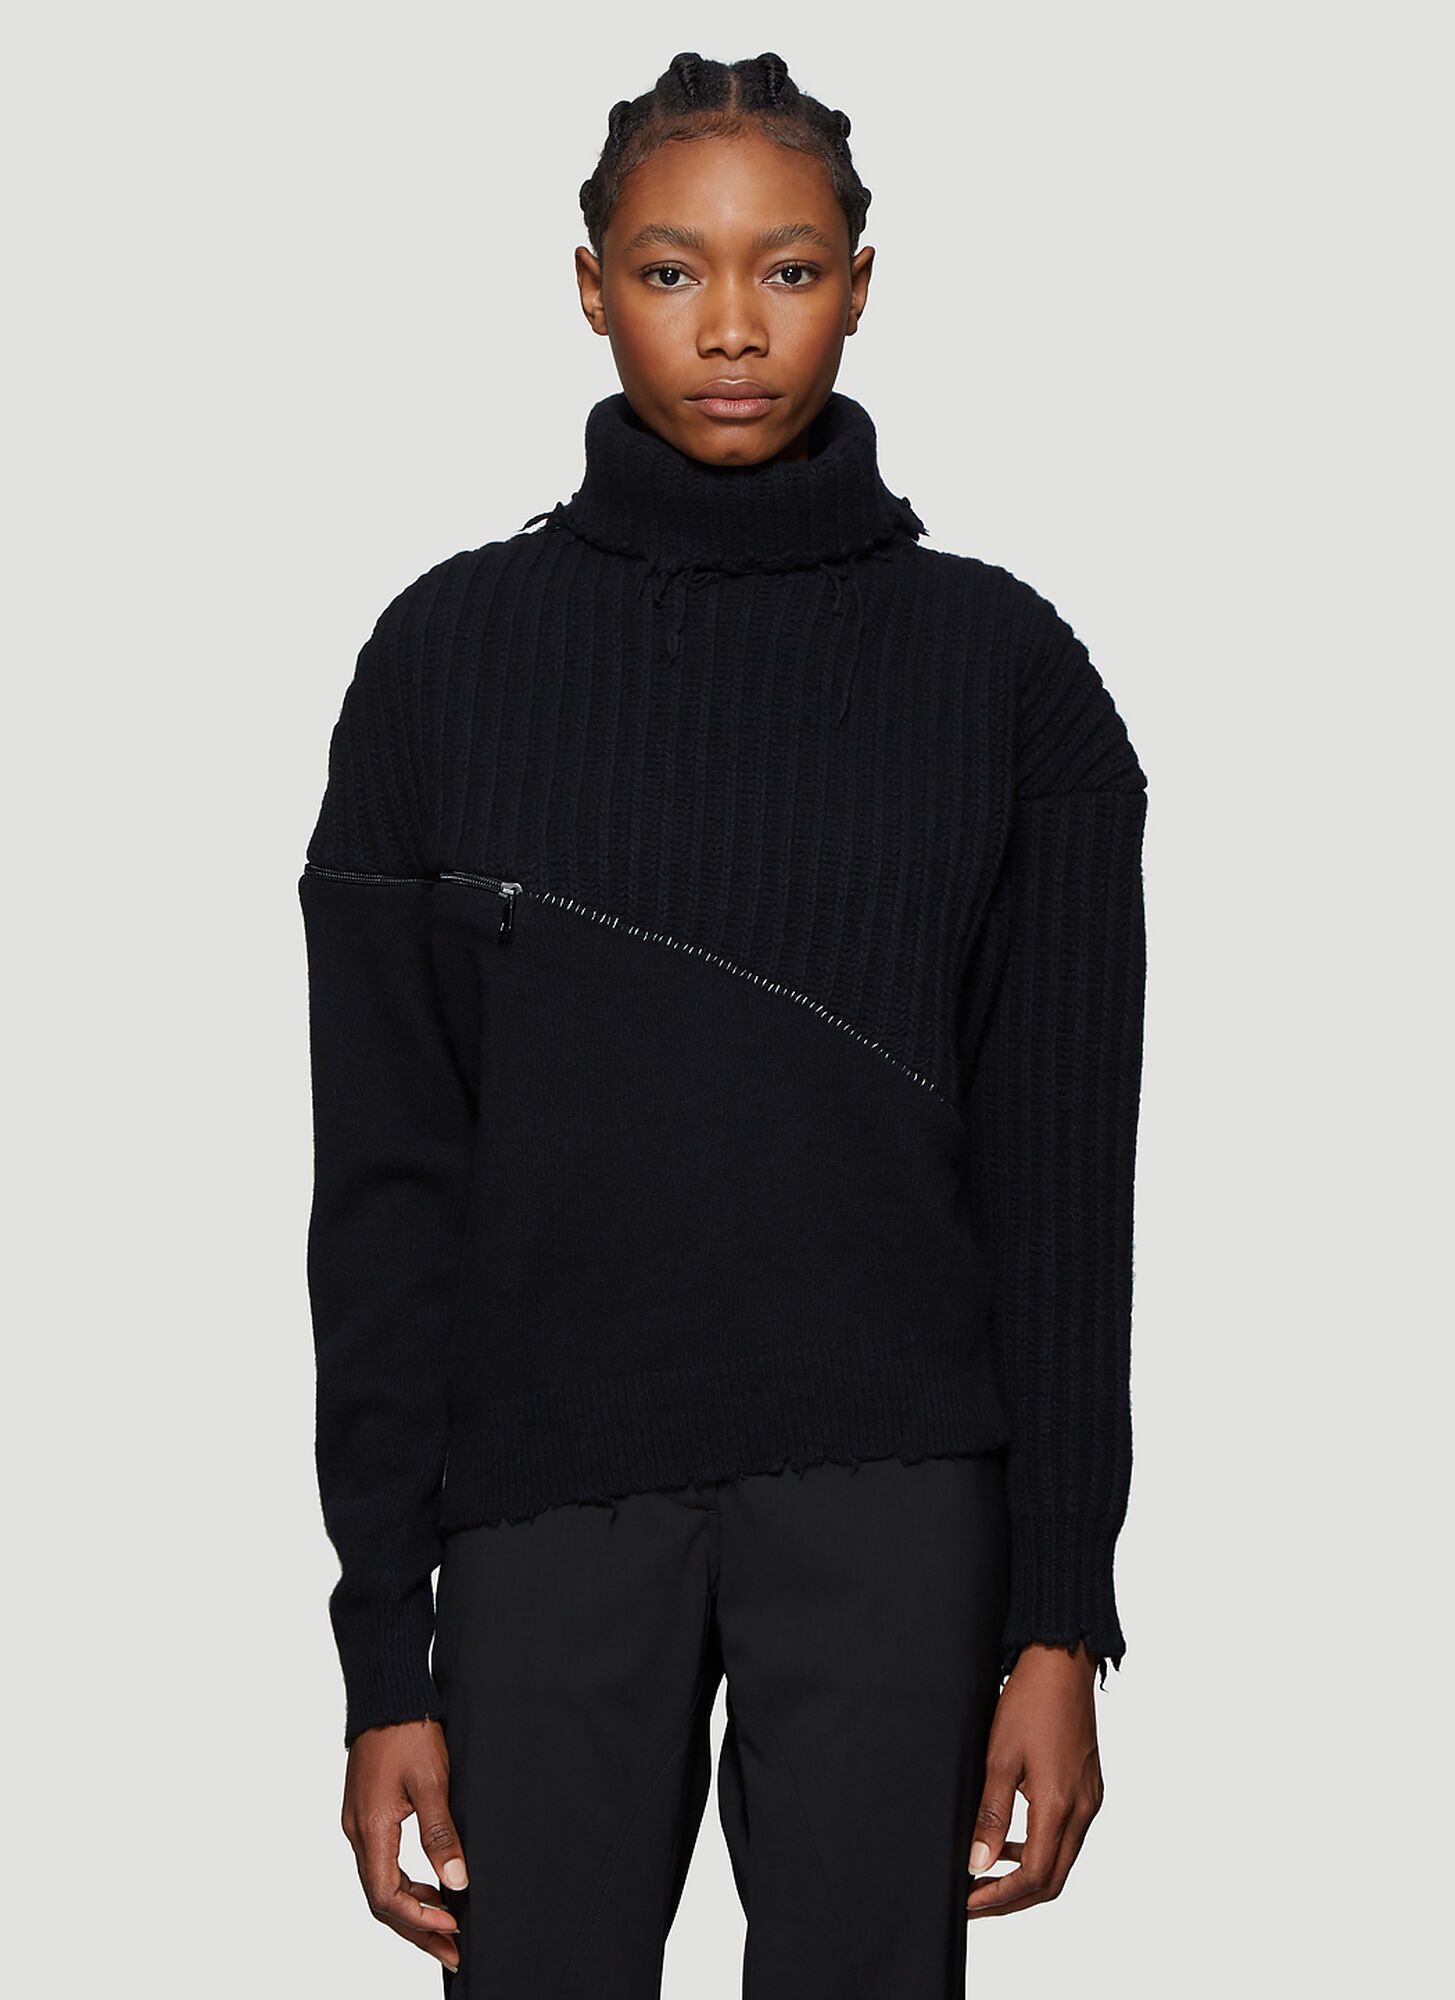 Unravel Project Raw Hem Turtleneck Sweater in Black